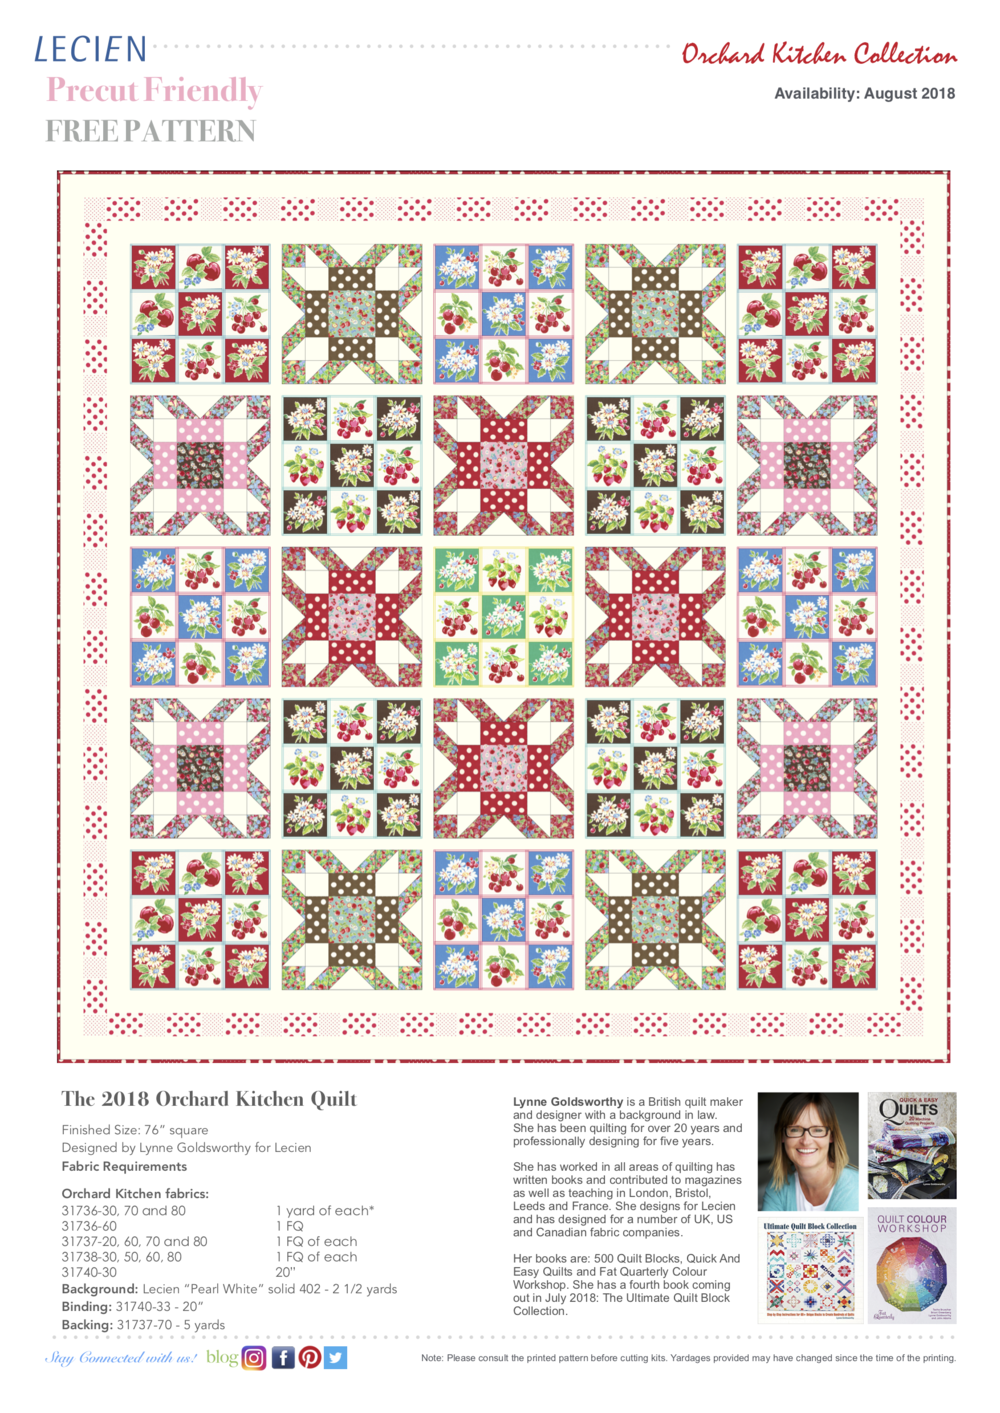 LECIEN_OrchardKitchen_2018_FreePattern_Cover.png